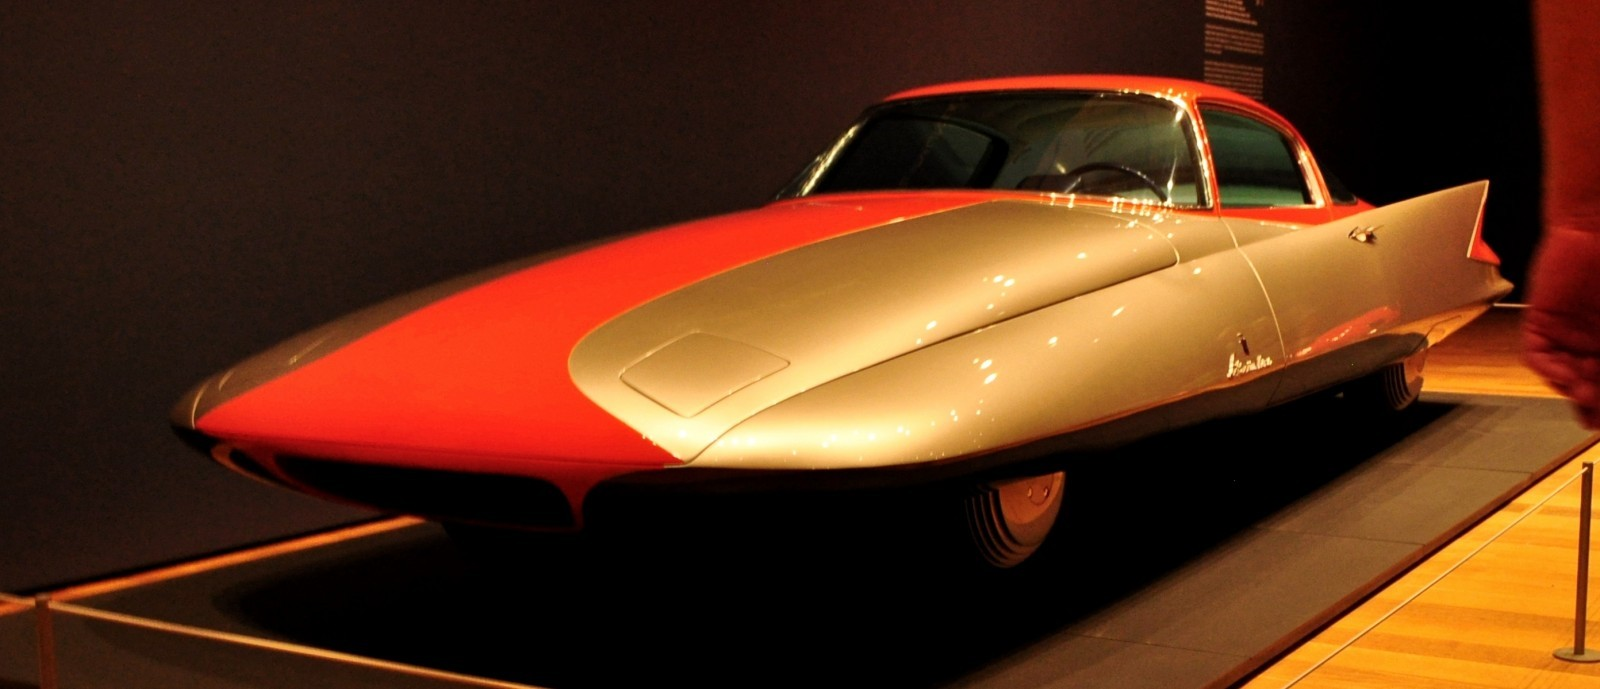 Atlanta Dream Cars - 1955 Chrysler Streamline X Ghilda by GHIA is Turbine Car Ideal 15